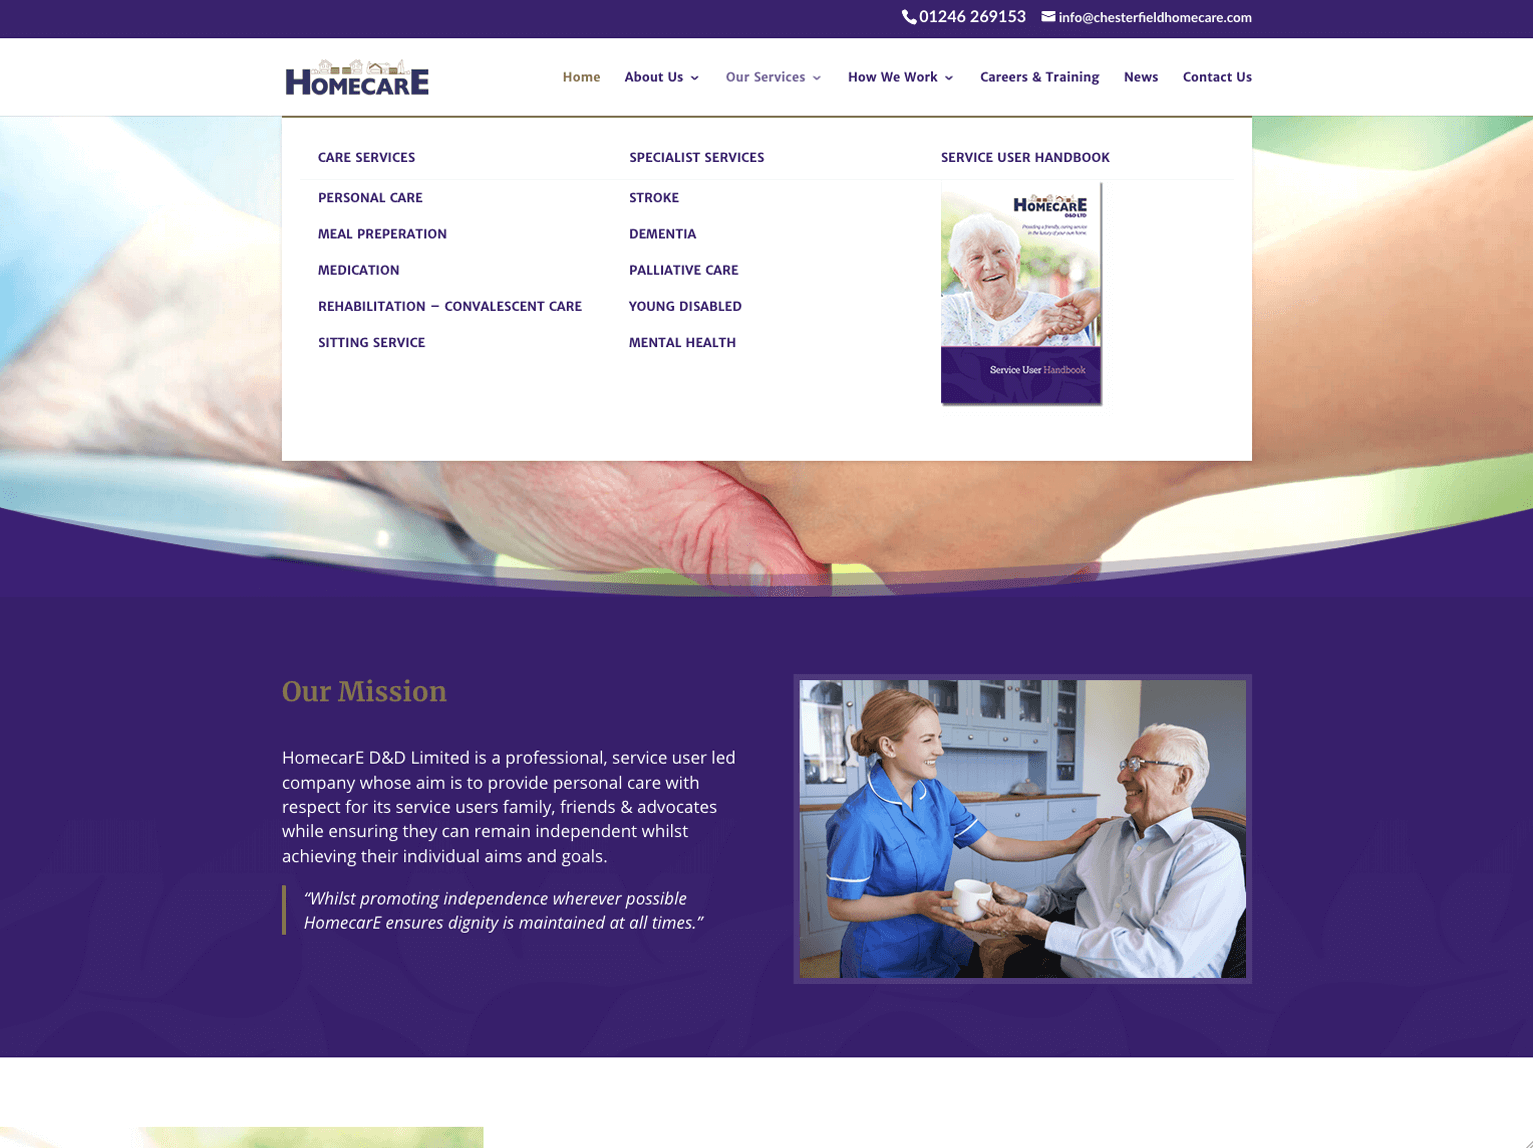 Homecare Chesterfield homepage megamenu